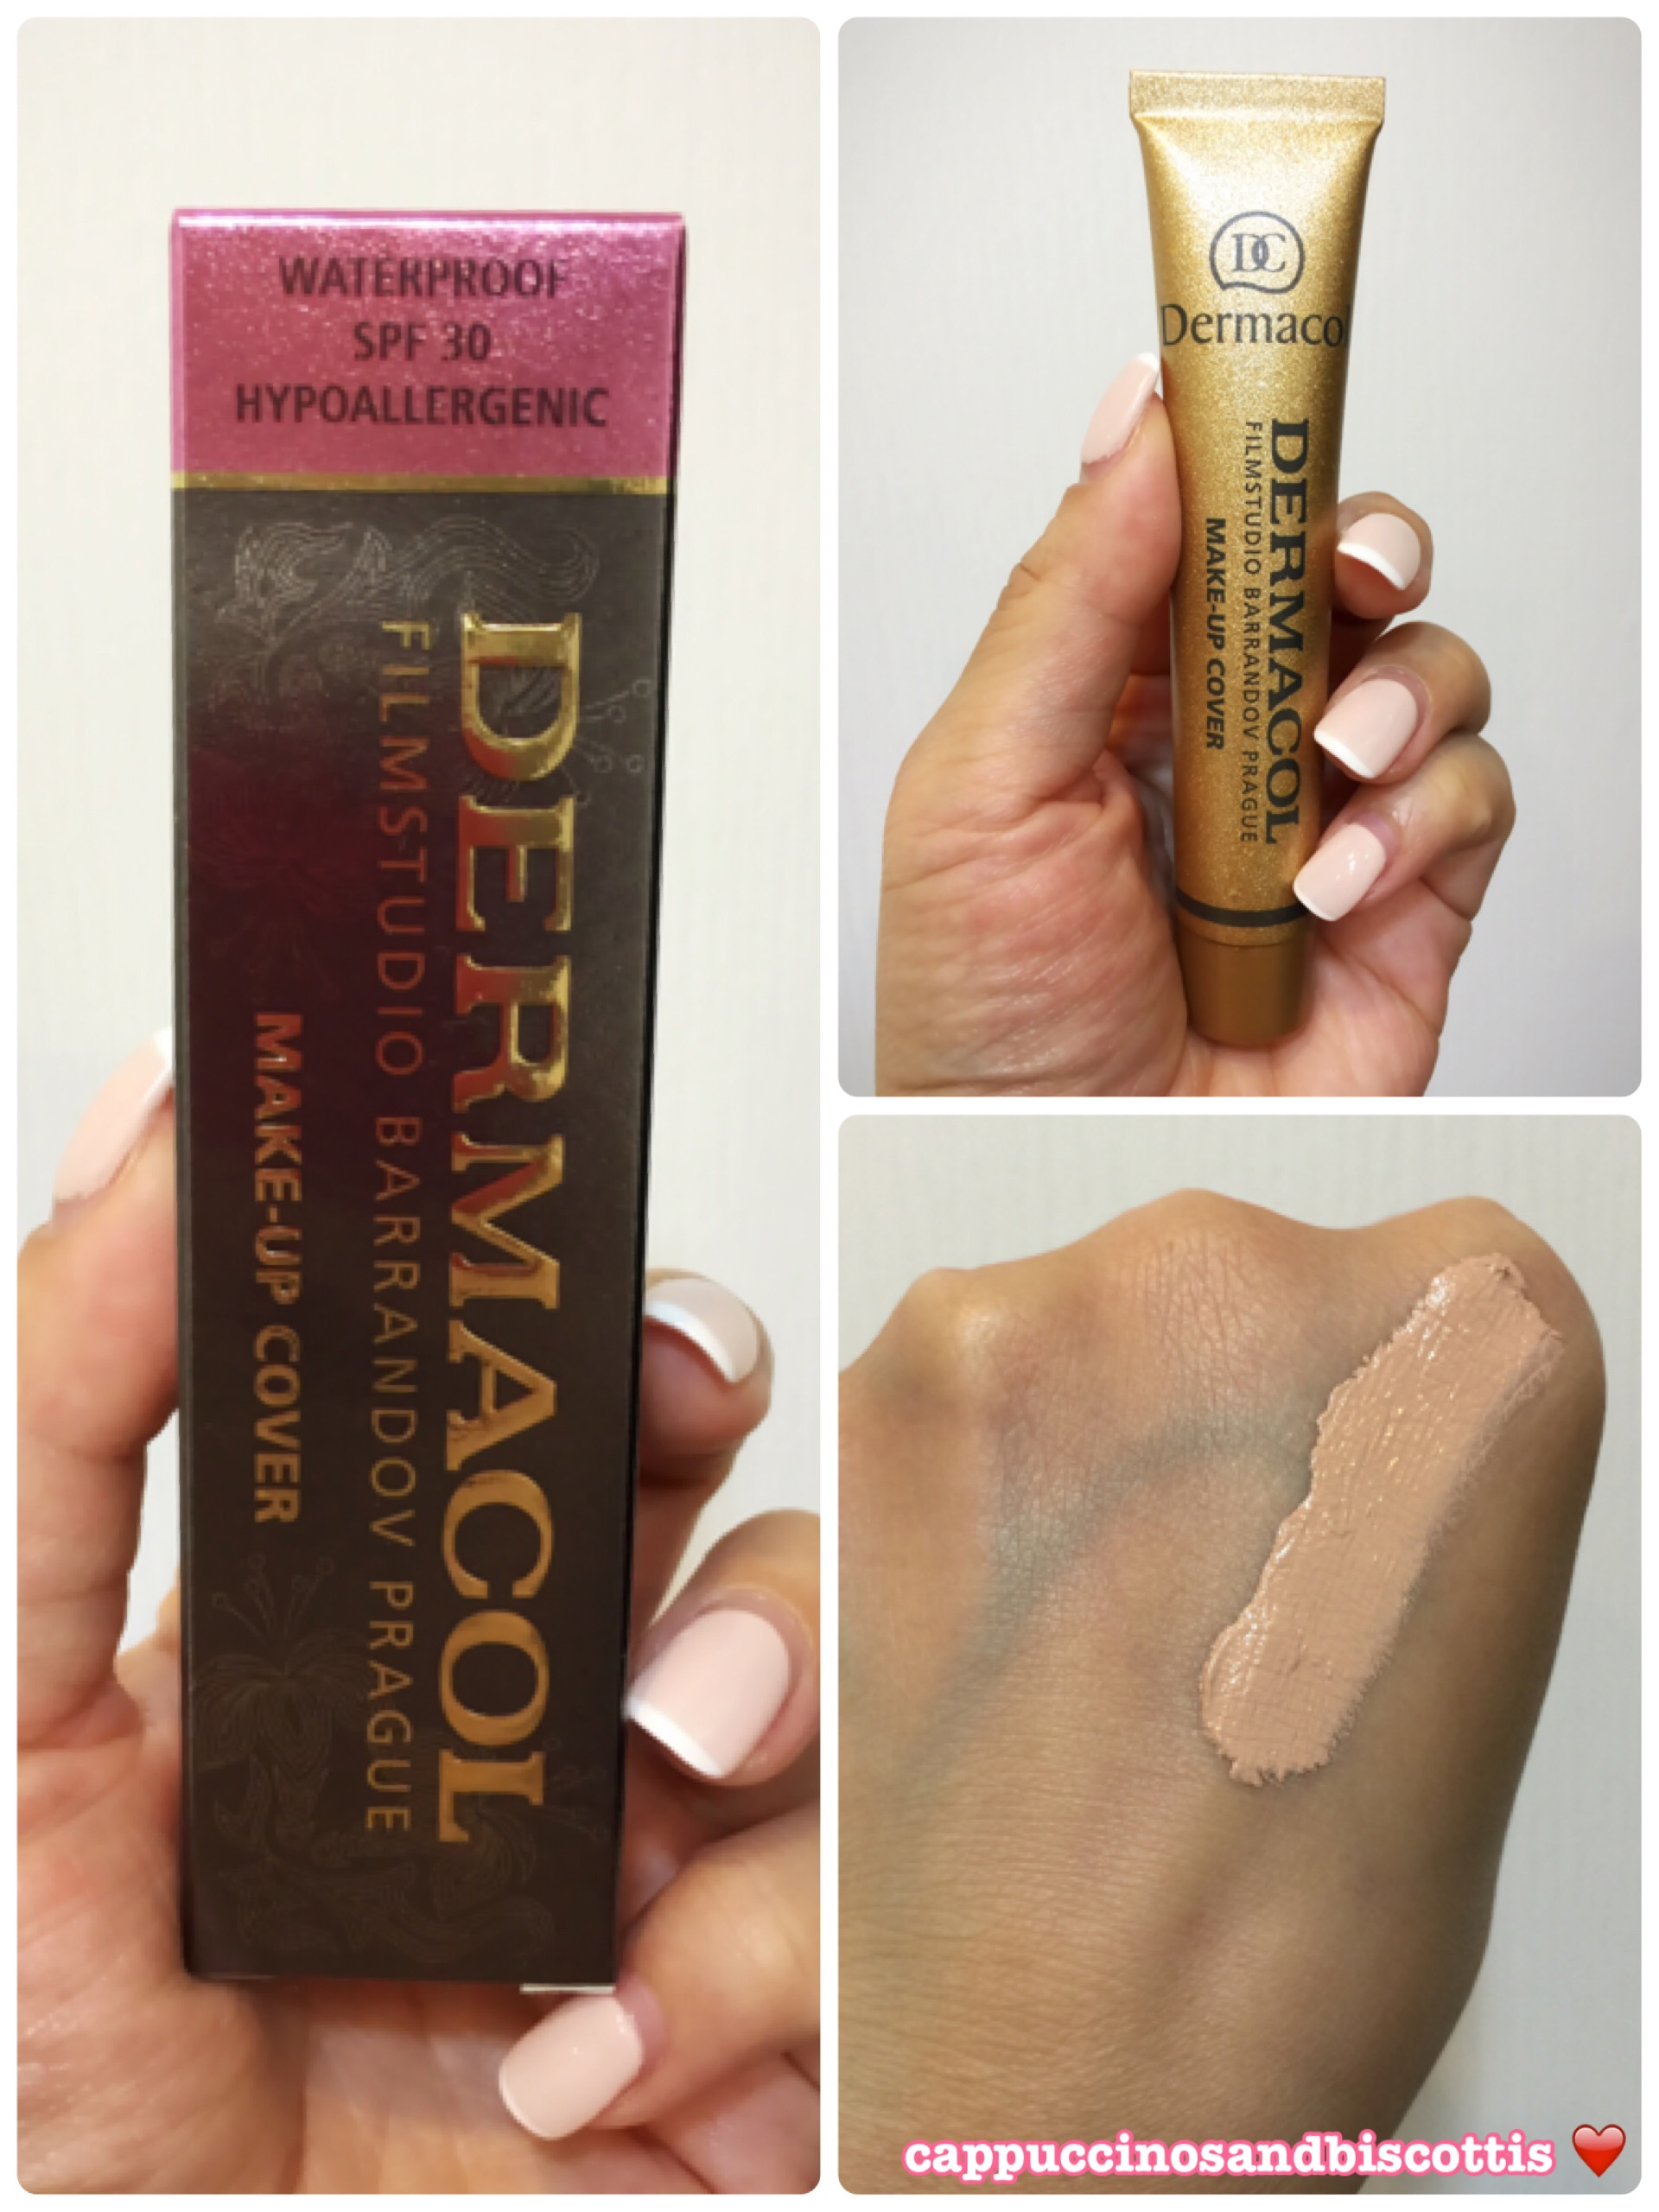 Dermacol Make Up Cover Foundation Review Cappuccinos And Biscottis